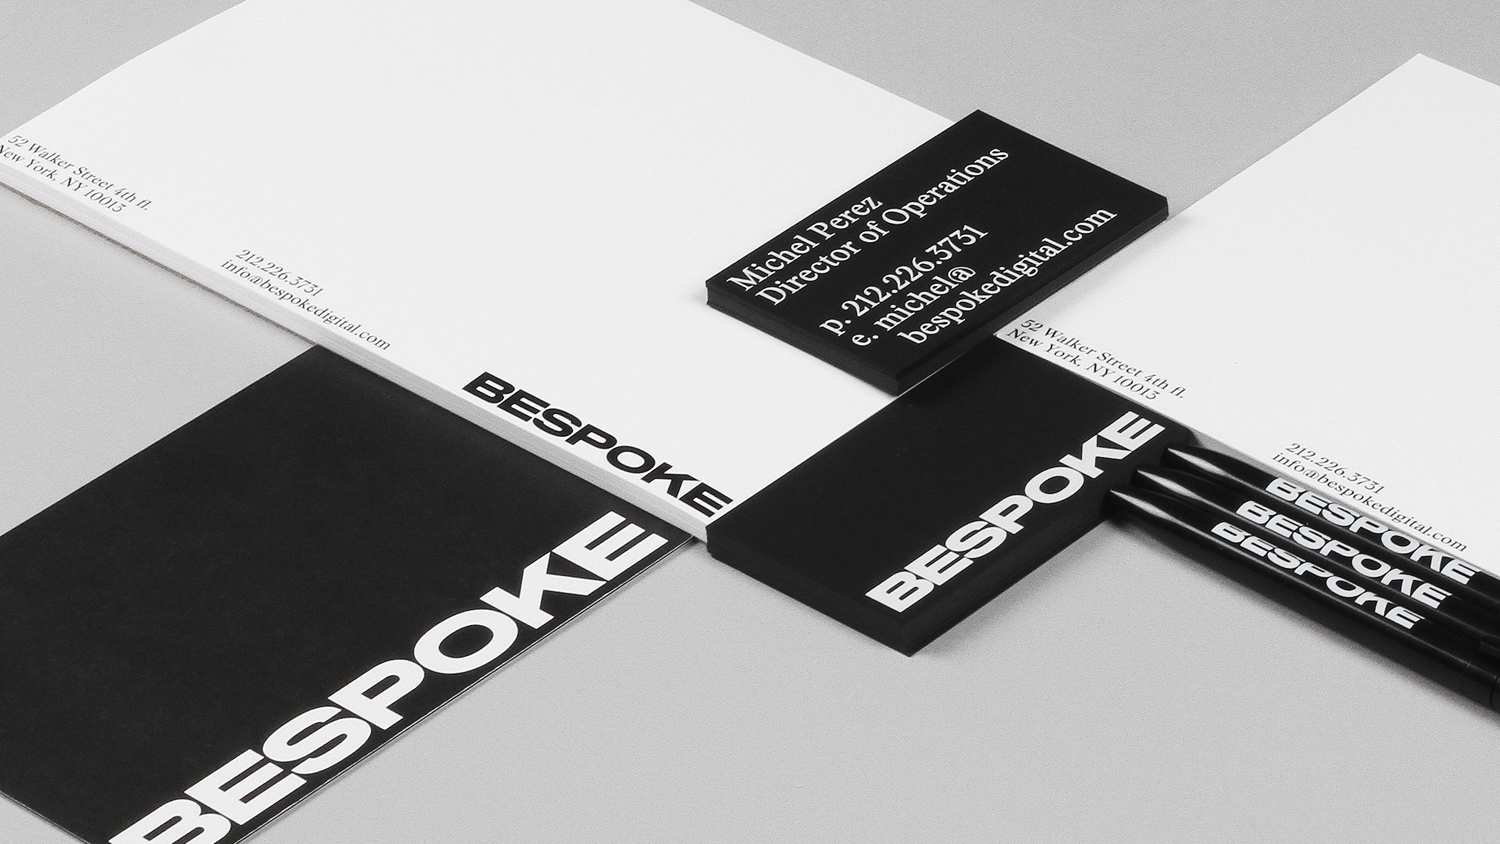 04-Bespoke-New-York-Branding-Print-Business-Cards-Stationery-DIA-USA-BPO